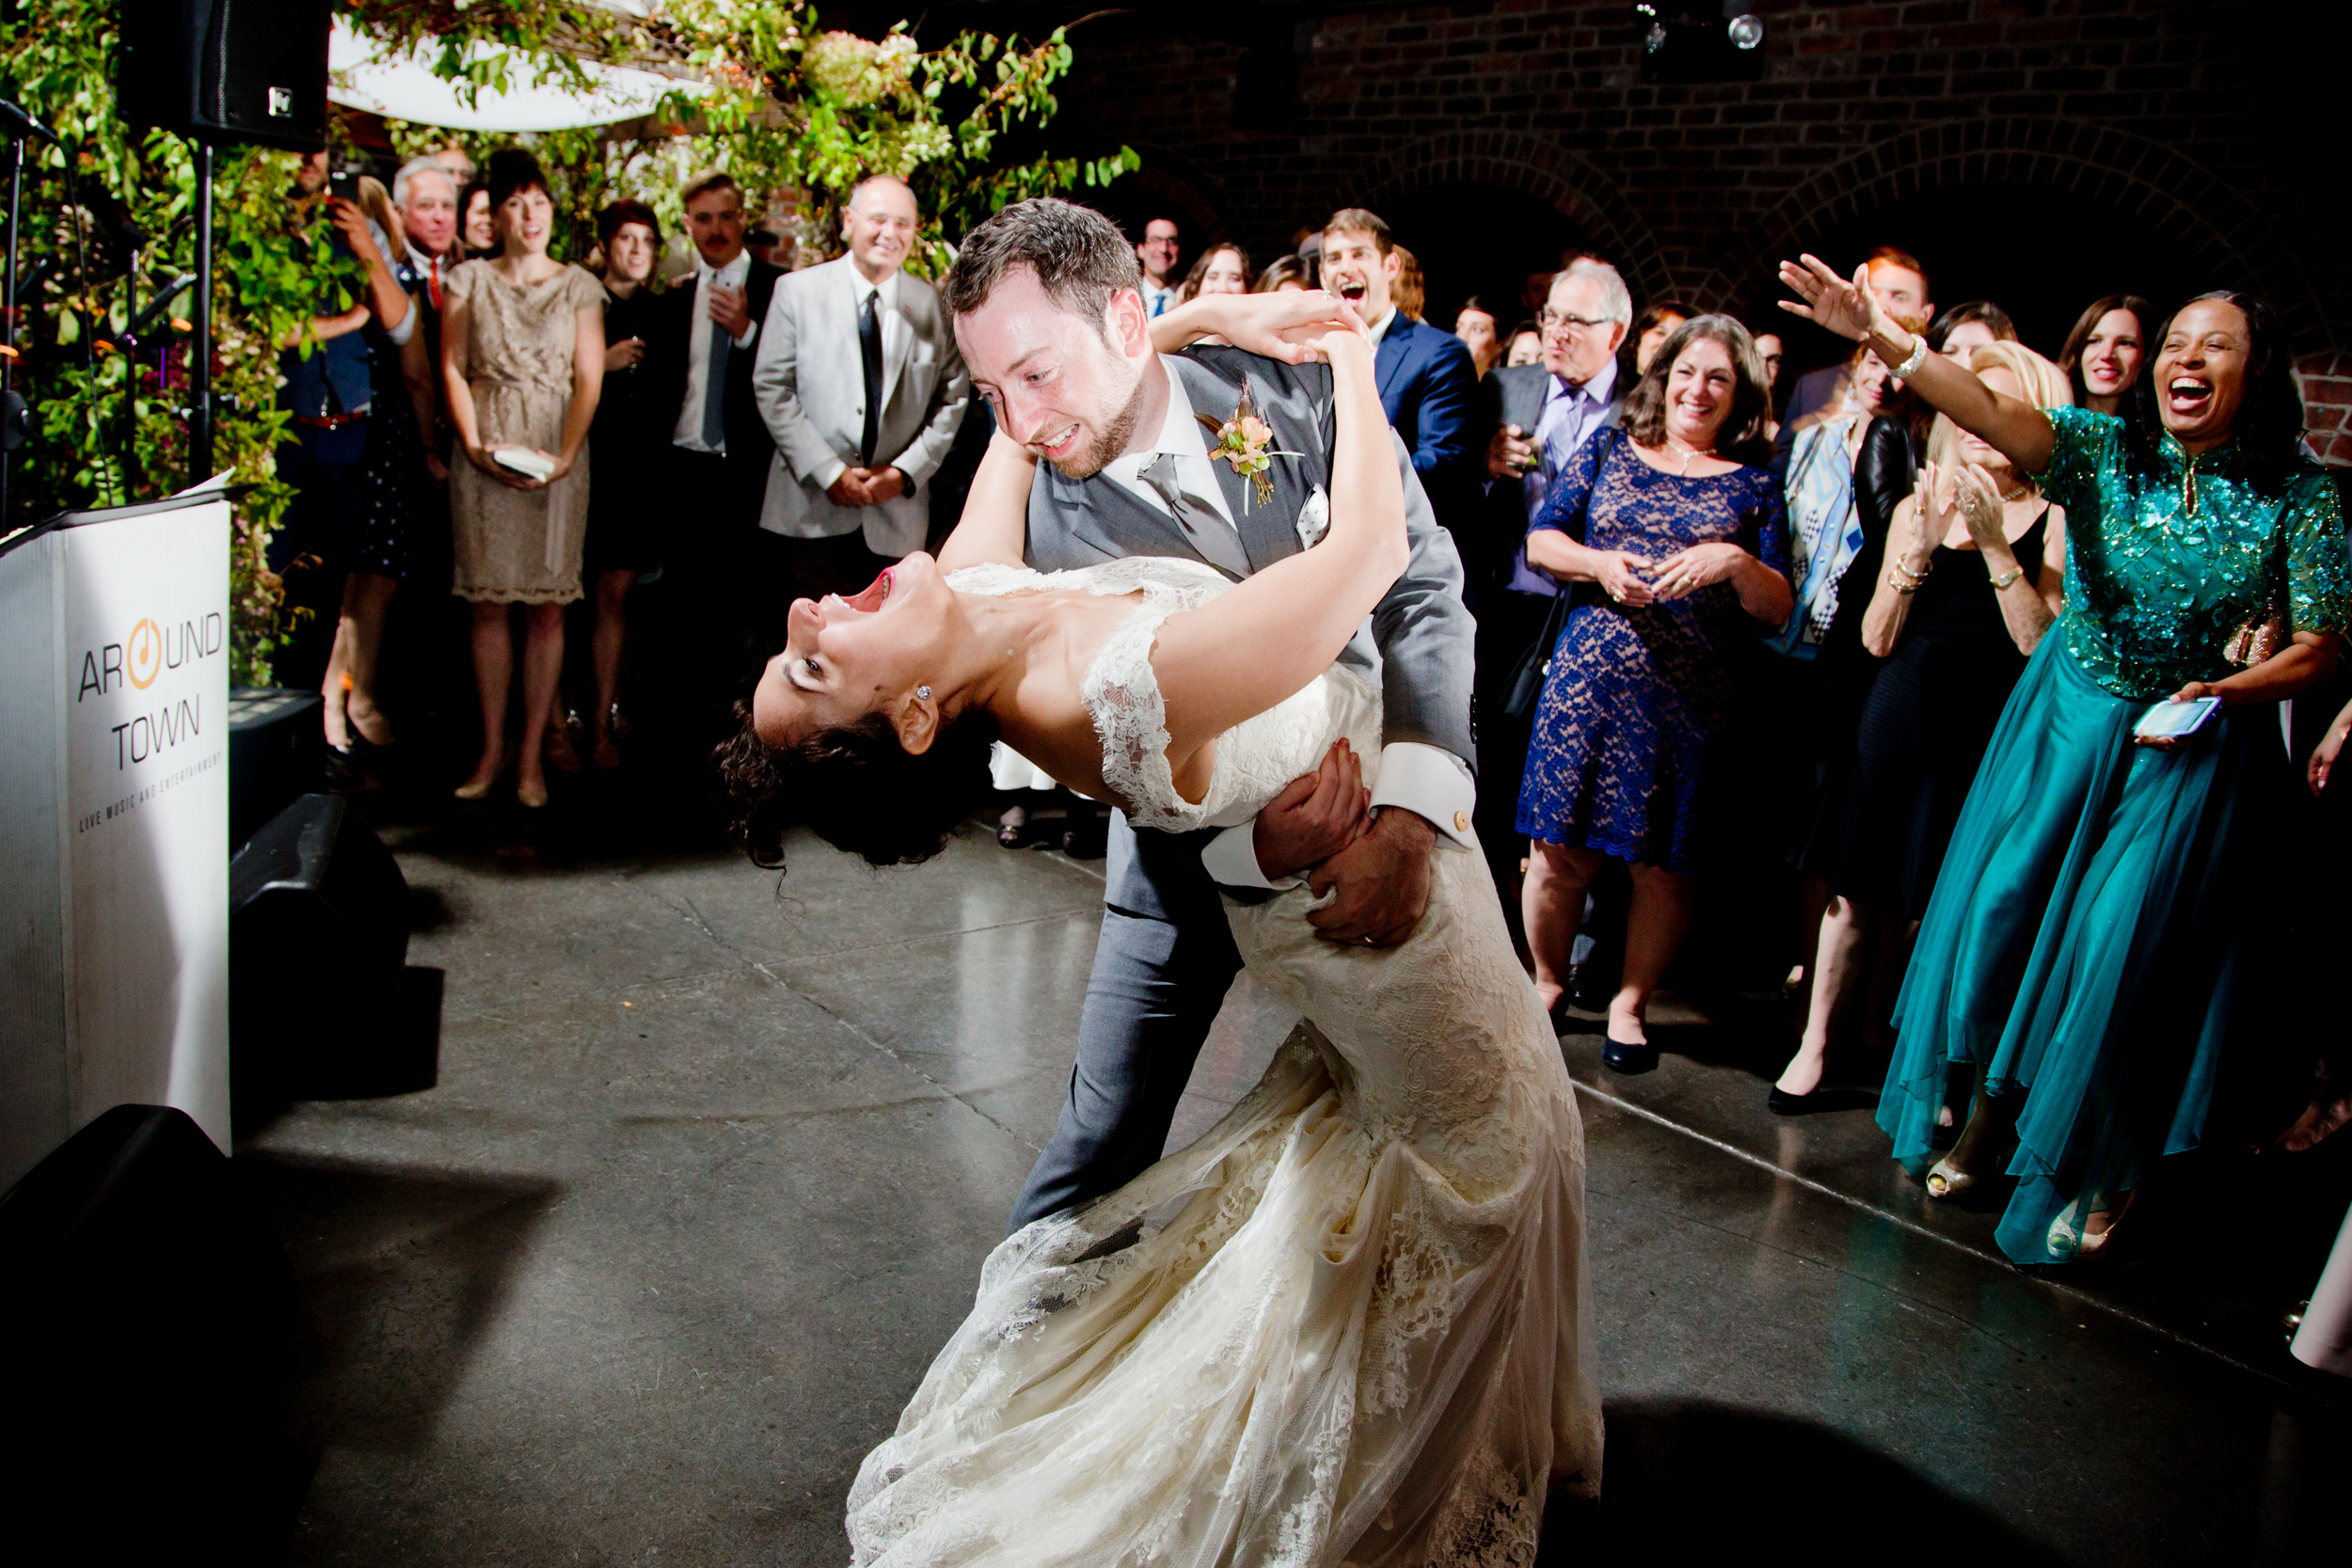 067_CarlyGaebe_SteadfastStudio_WeddingPhotography_Readyluck_NewYorkCity_Brooklyn_LongIslandCity_TheFoundry_Fall_AltaModaBridal_Bride_Groom_Reception_FirstDance.jpg